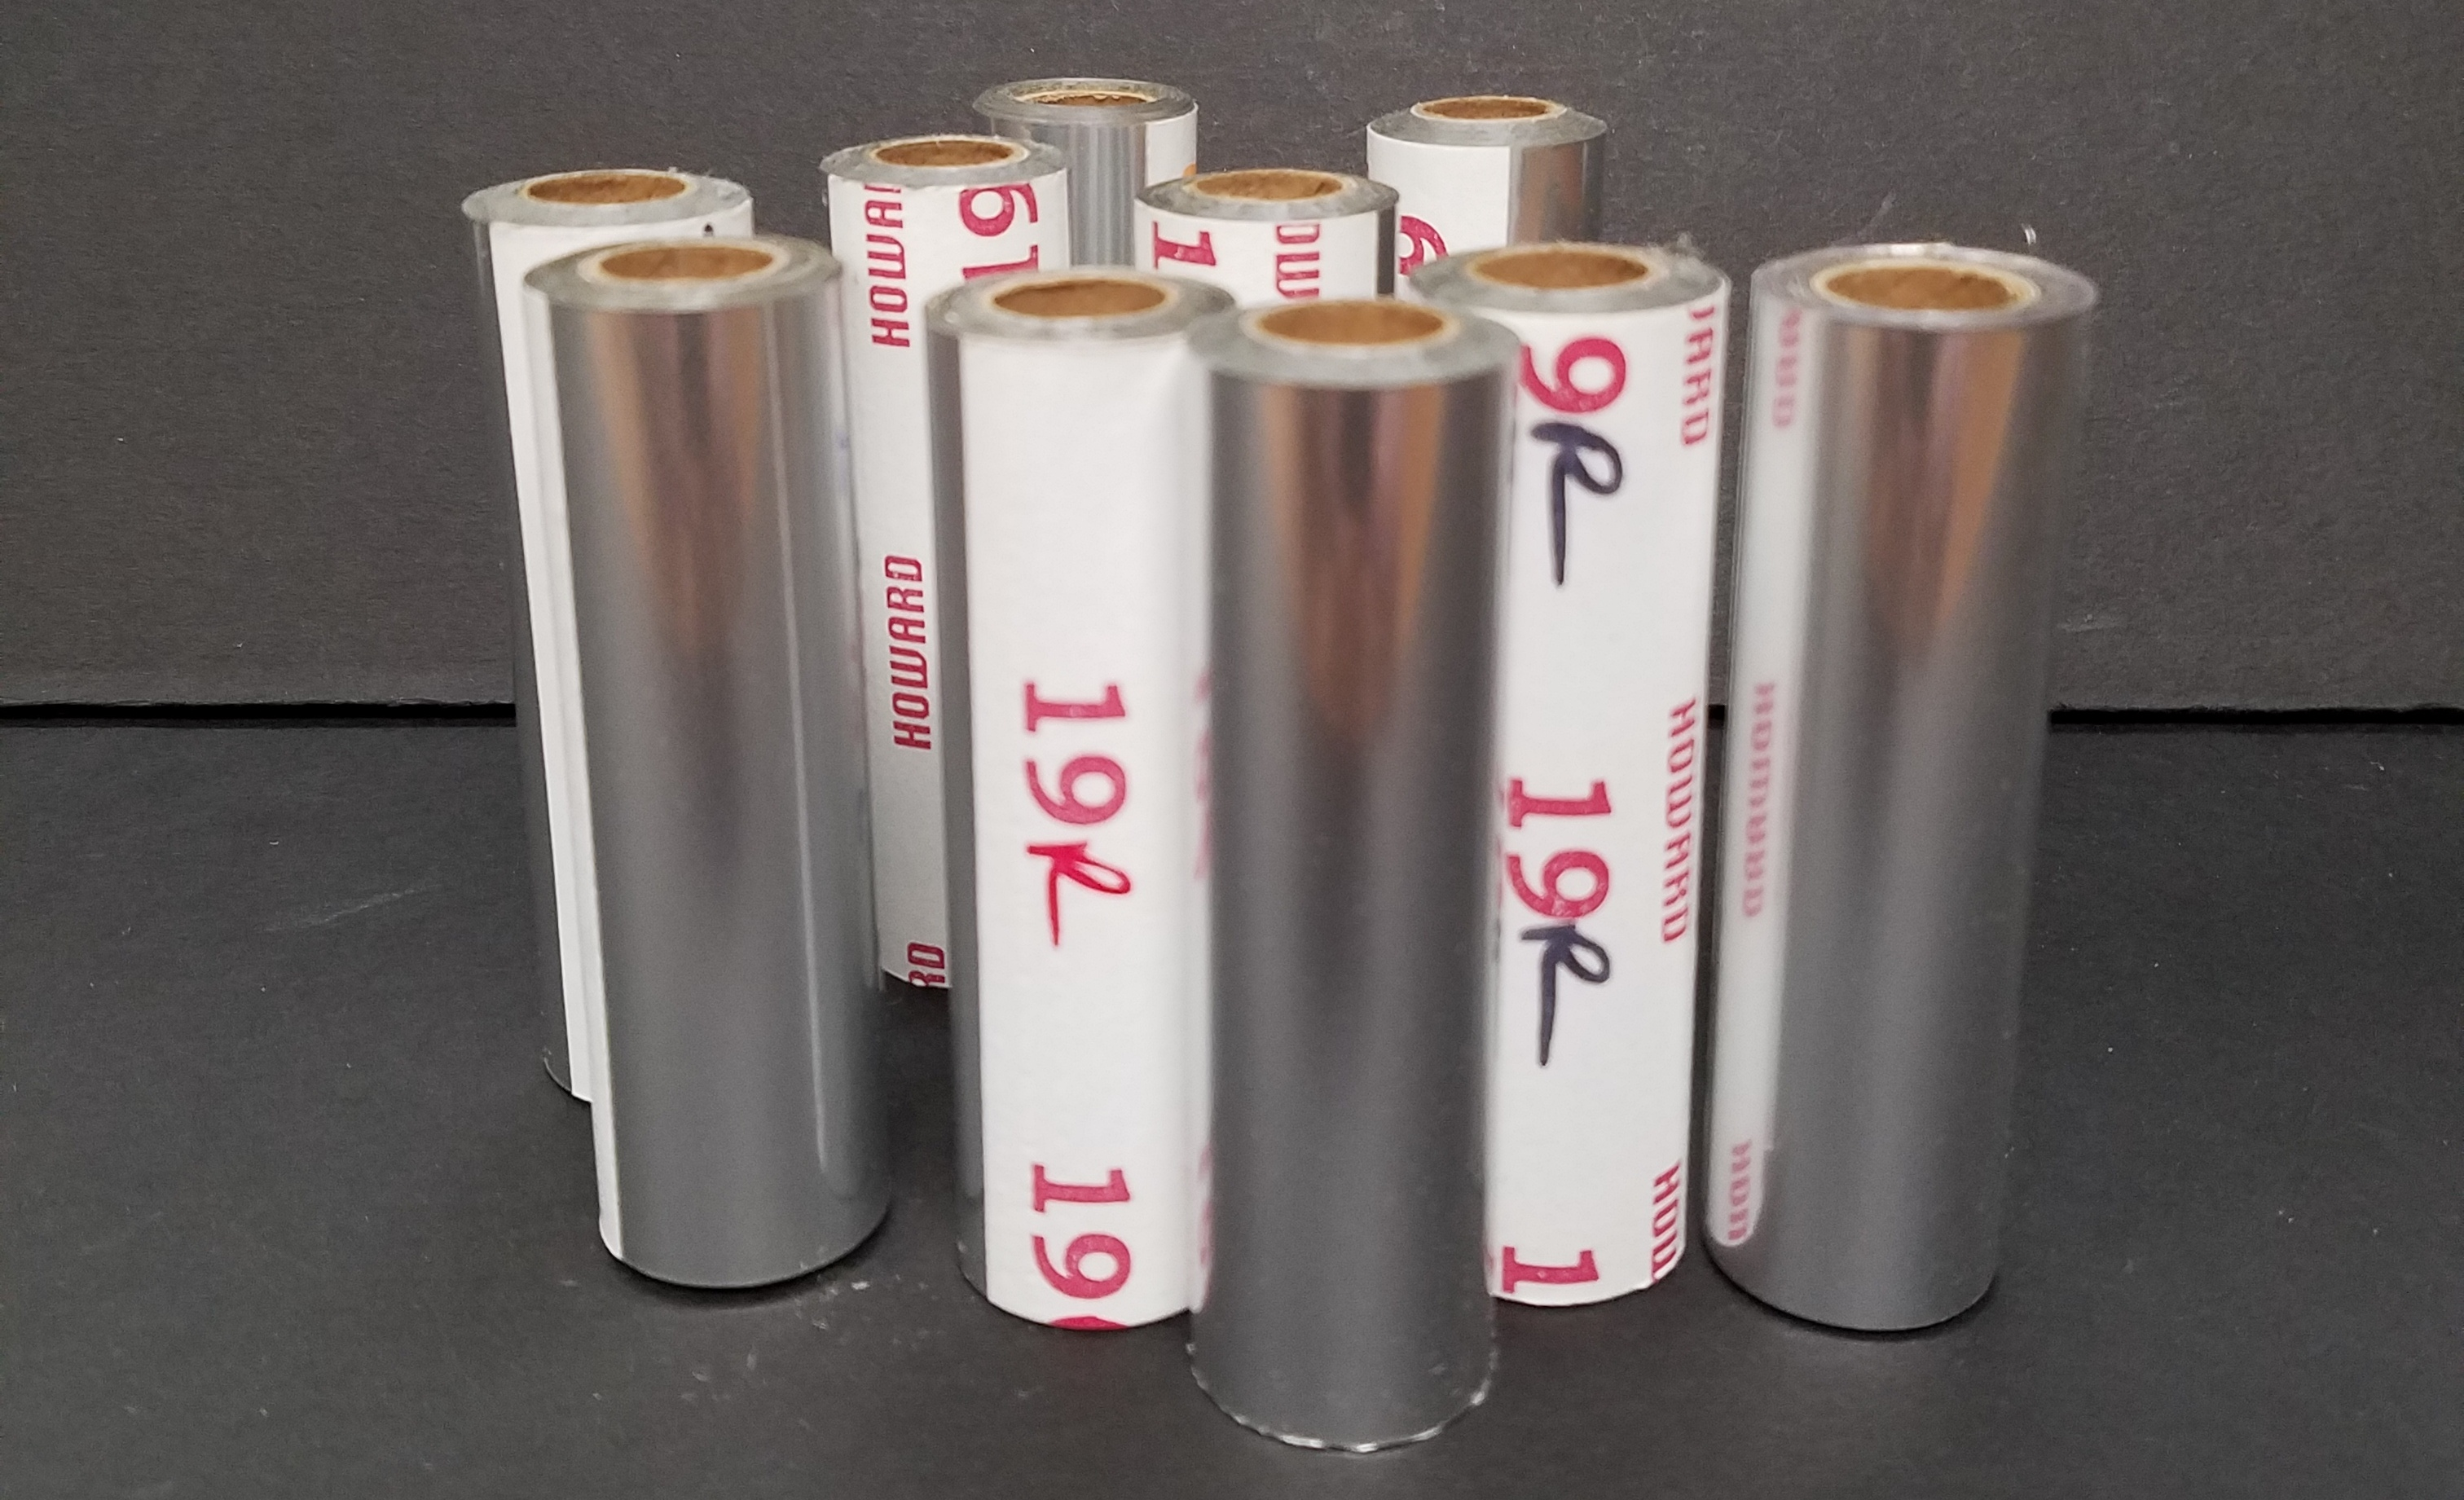 19-R Silver Hot Stamping Foil (10 rolls) 3 inch